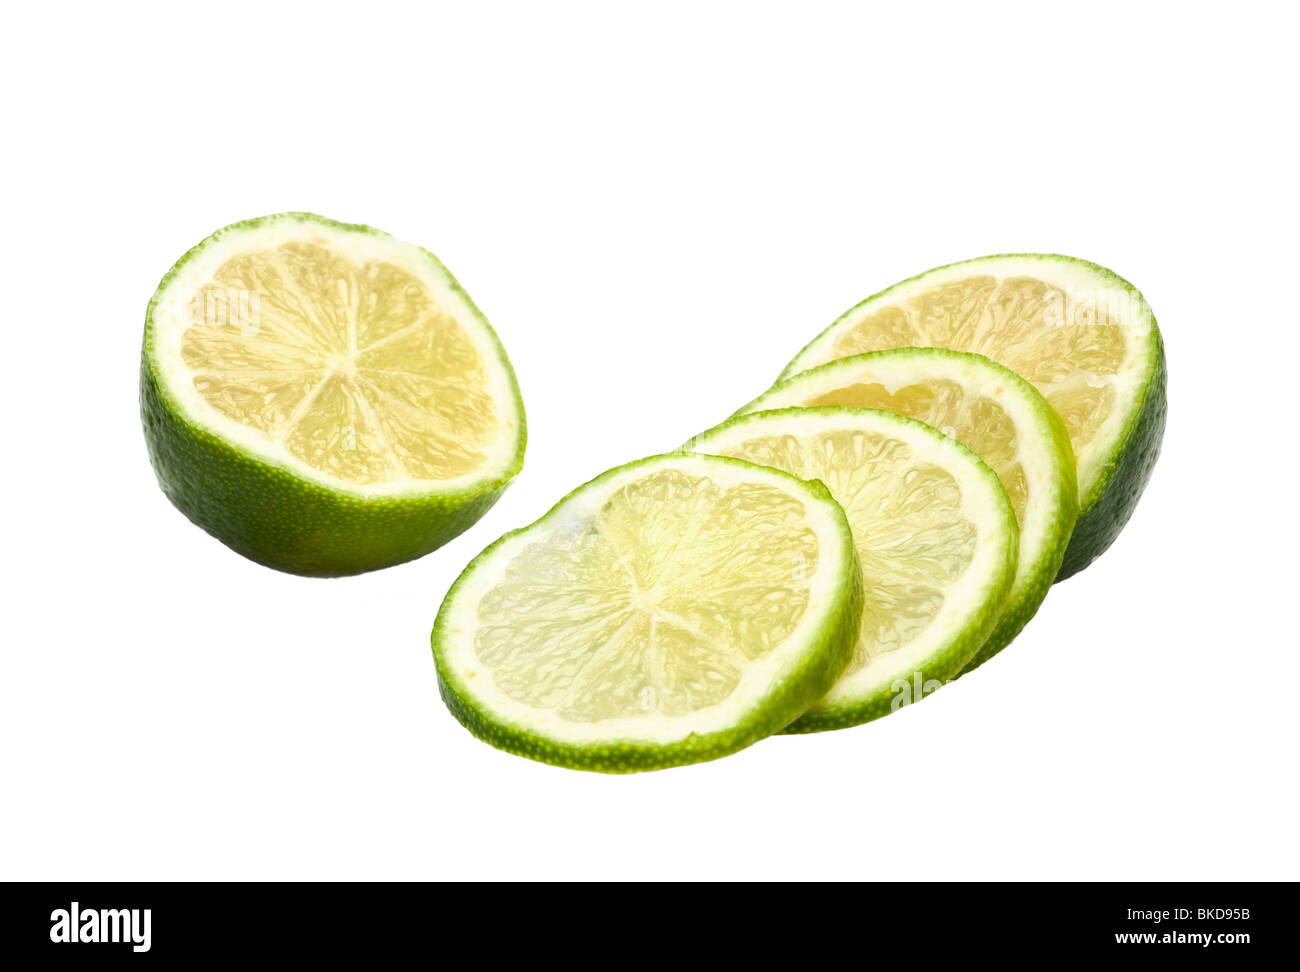 Limes whole and sliced on white - Stock Image